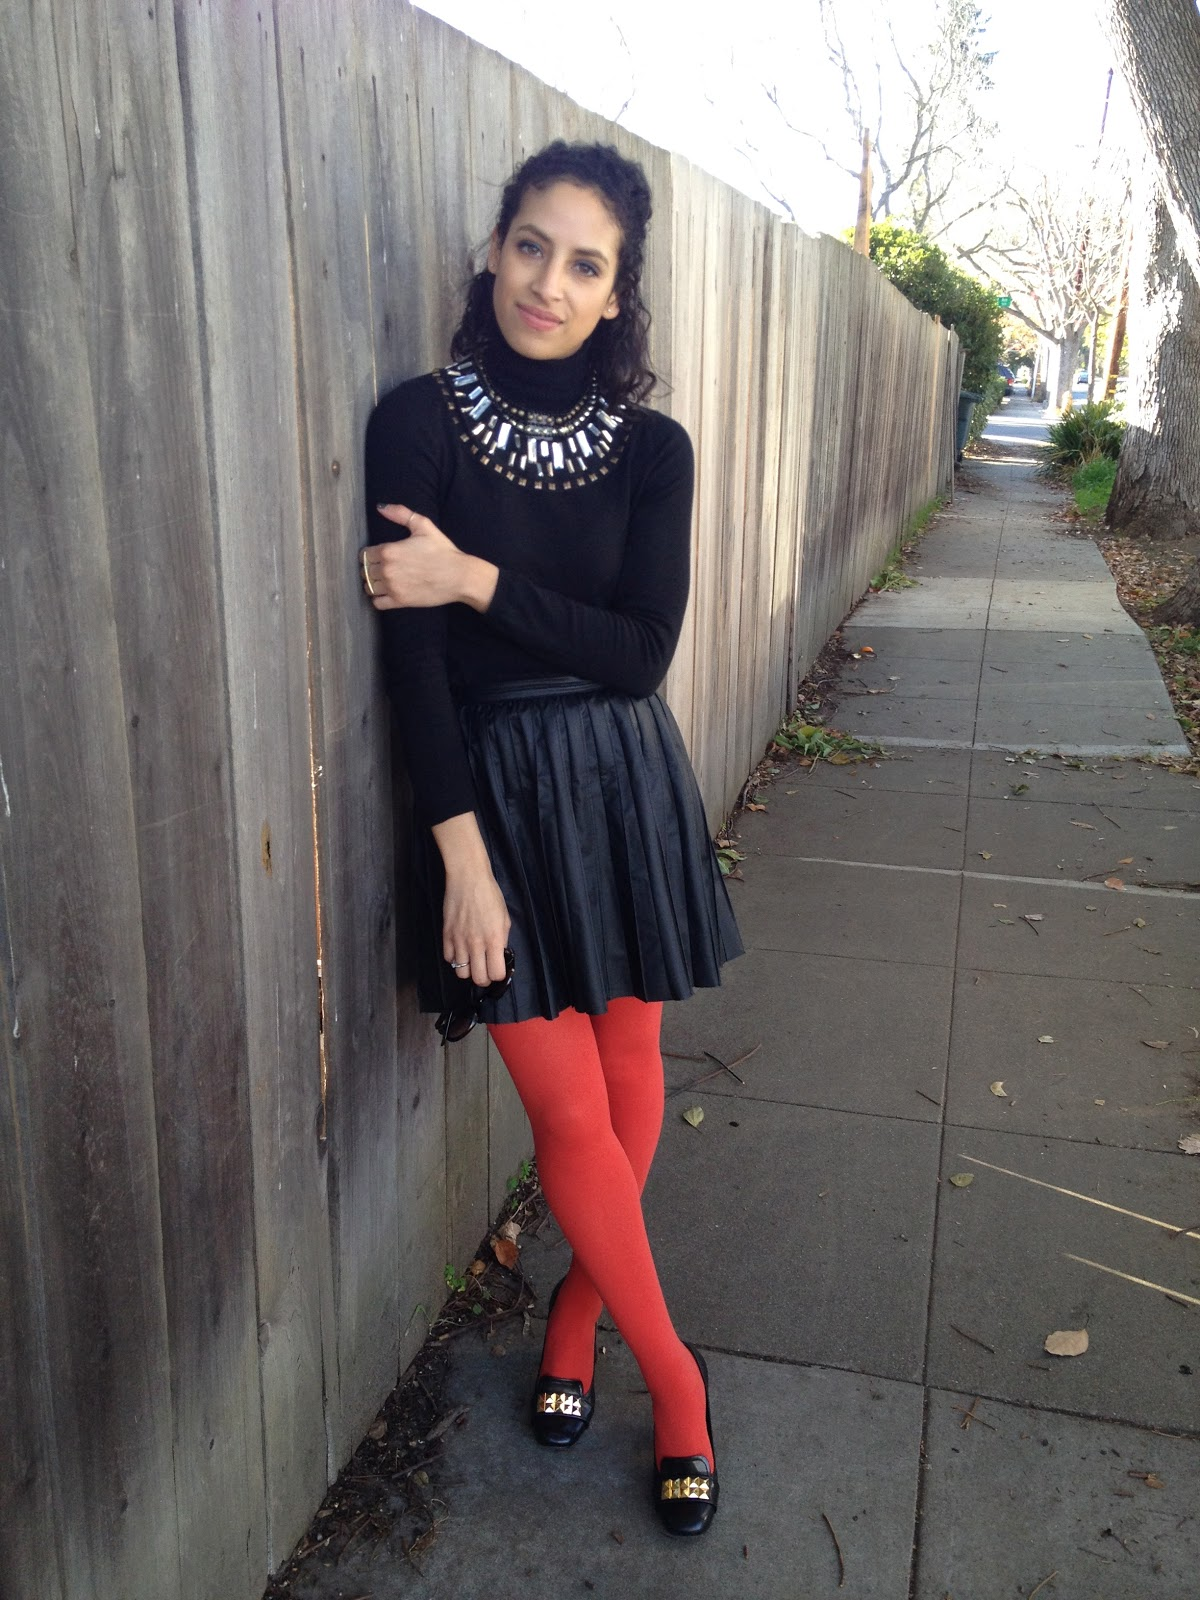 The ultimate red tights inspiration. - Fashionmylegs : The